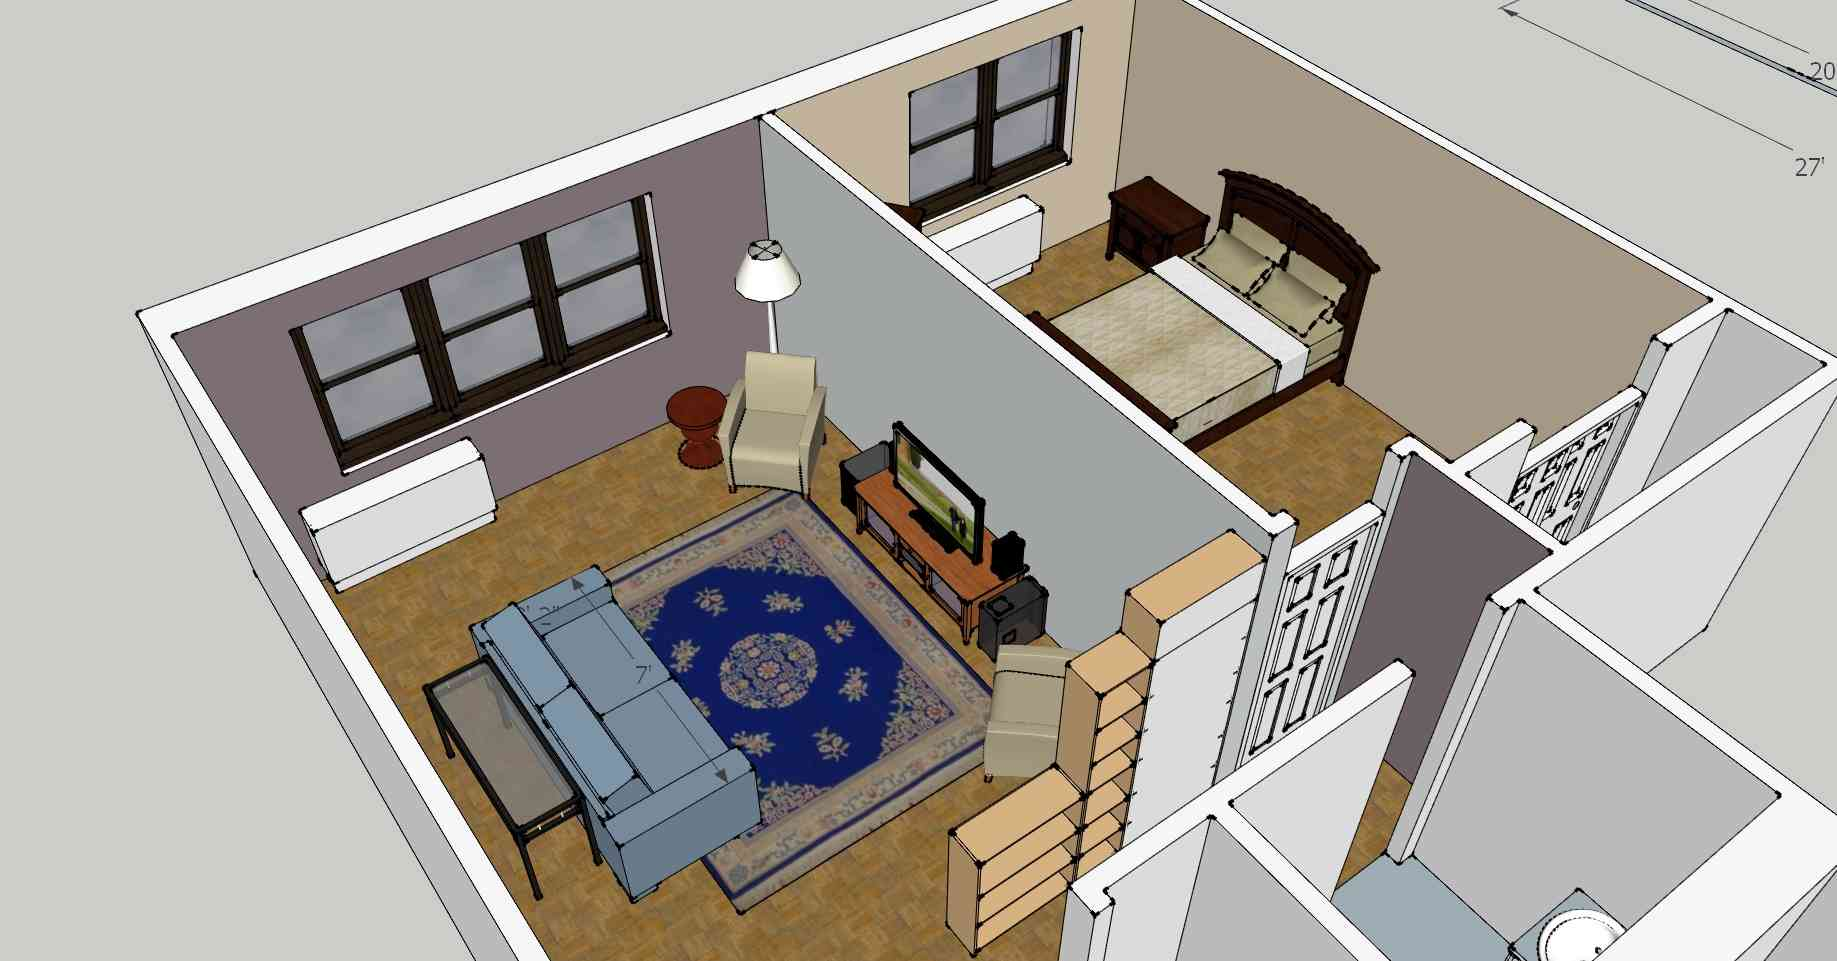 Stunning Design Of The Simple Floor Plans With Living Room And Bed Room Ideas With Single Bathroom